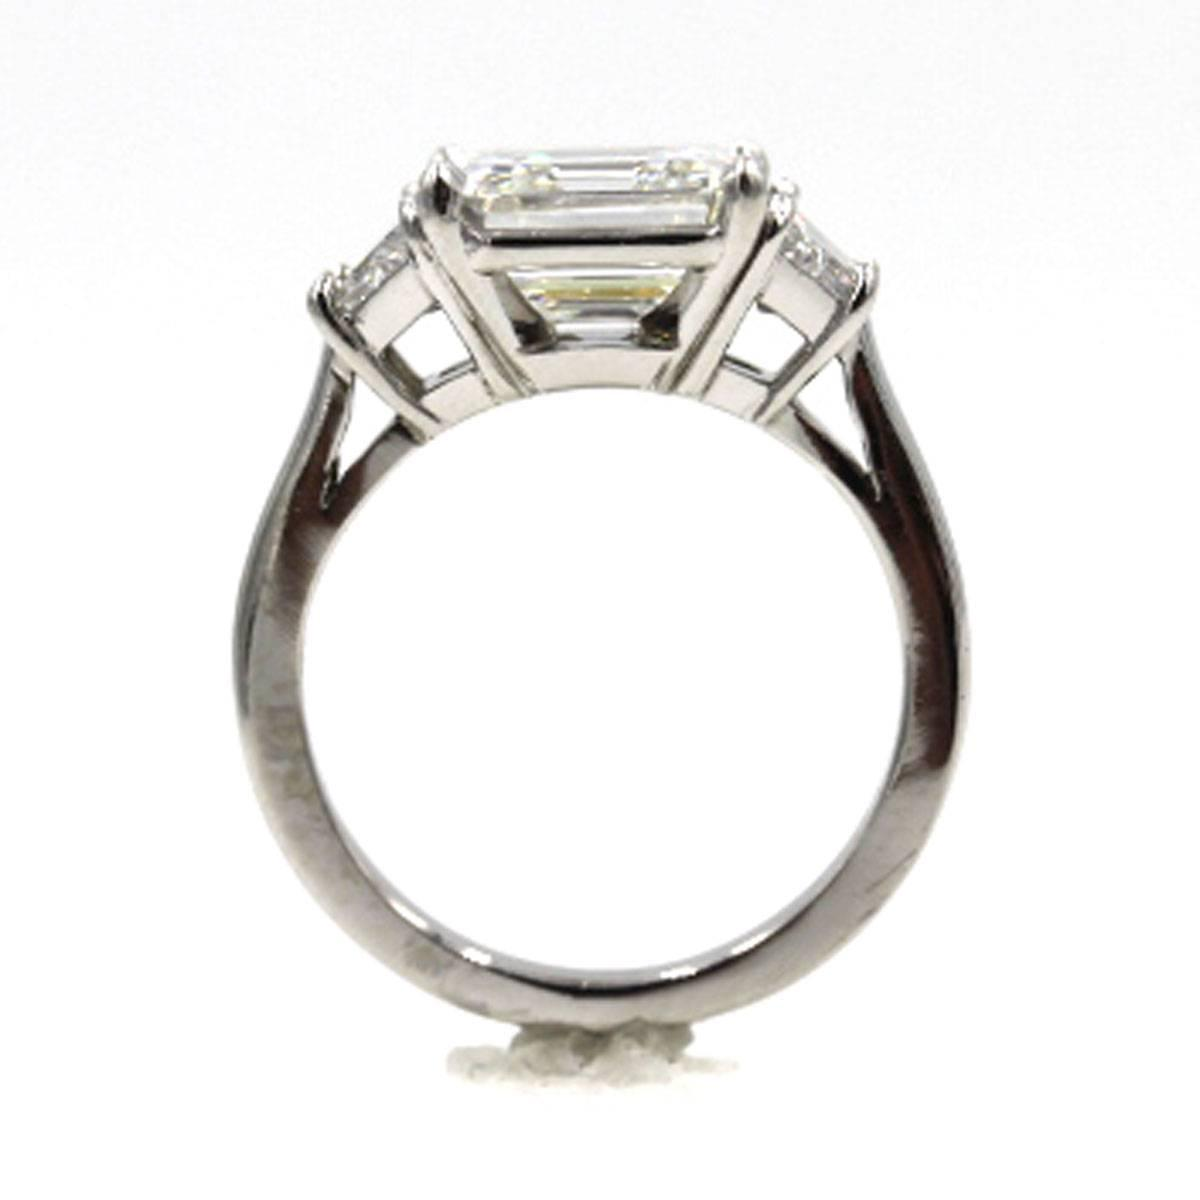 Cartier 3 17 Carat Three Diamond Platinum Engagement Ring at 1stdibs